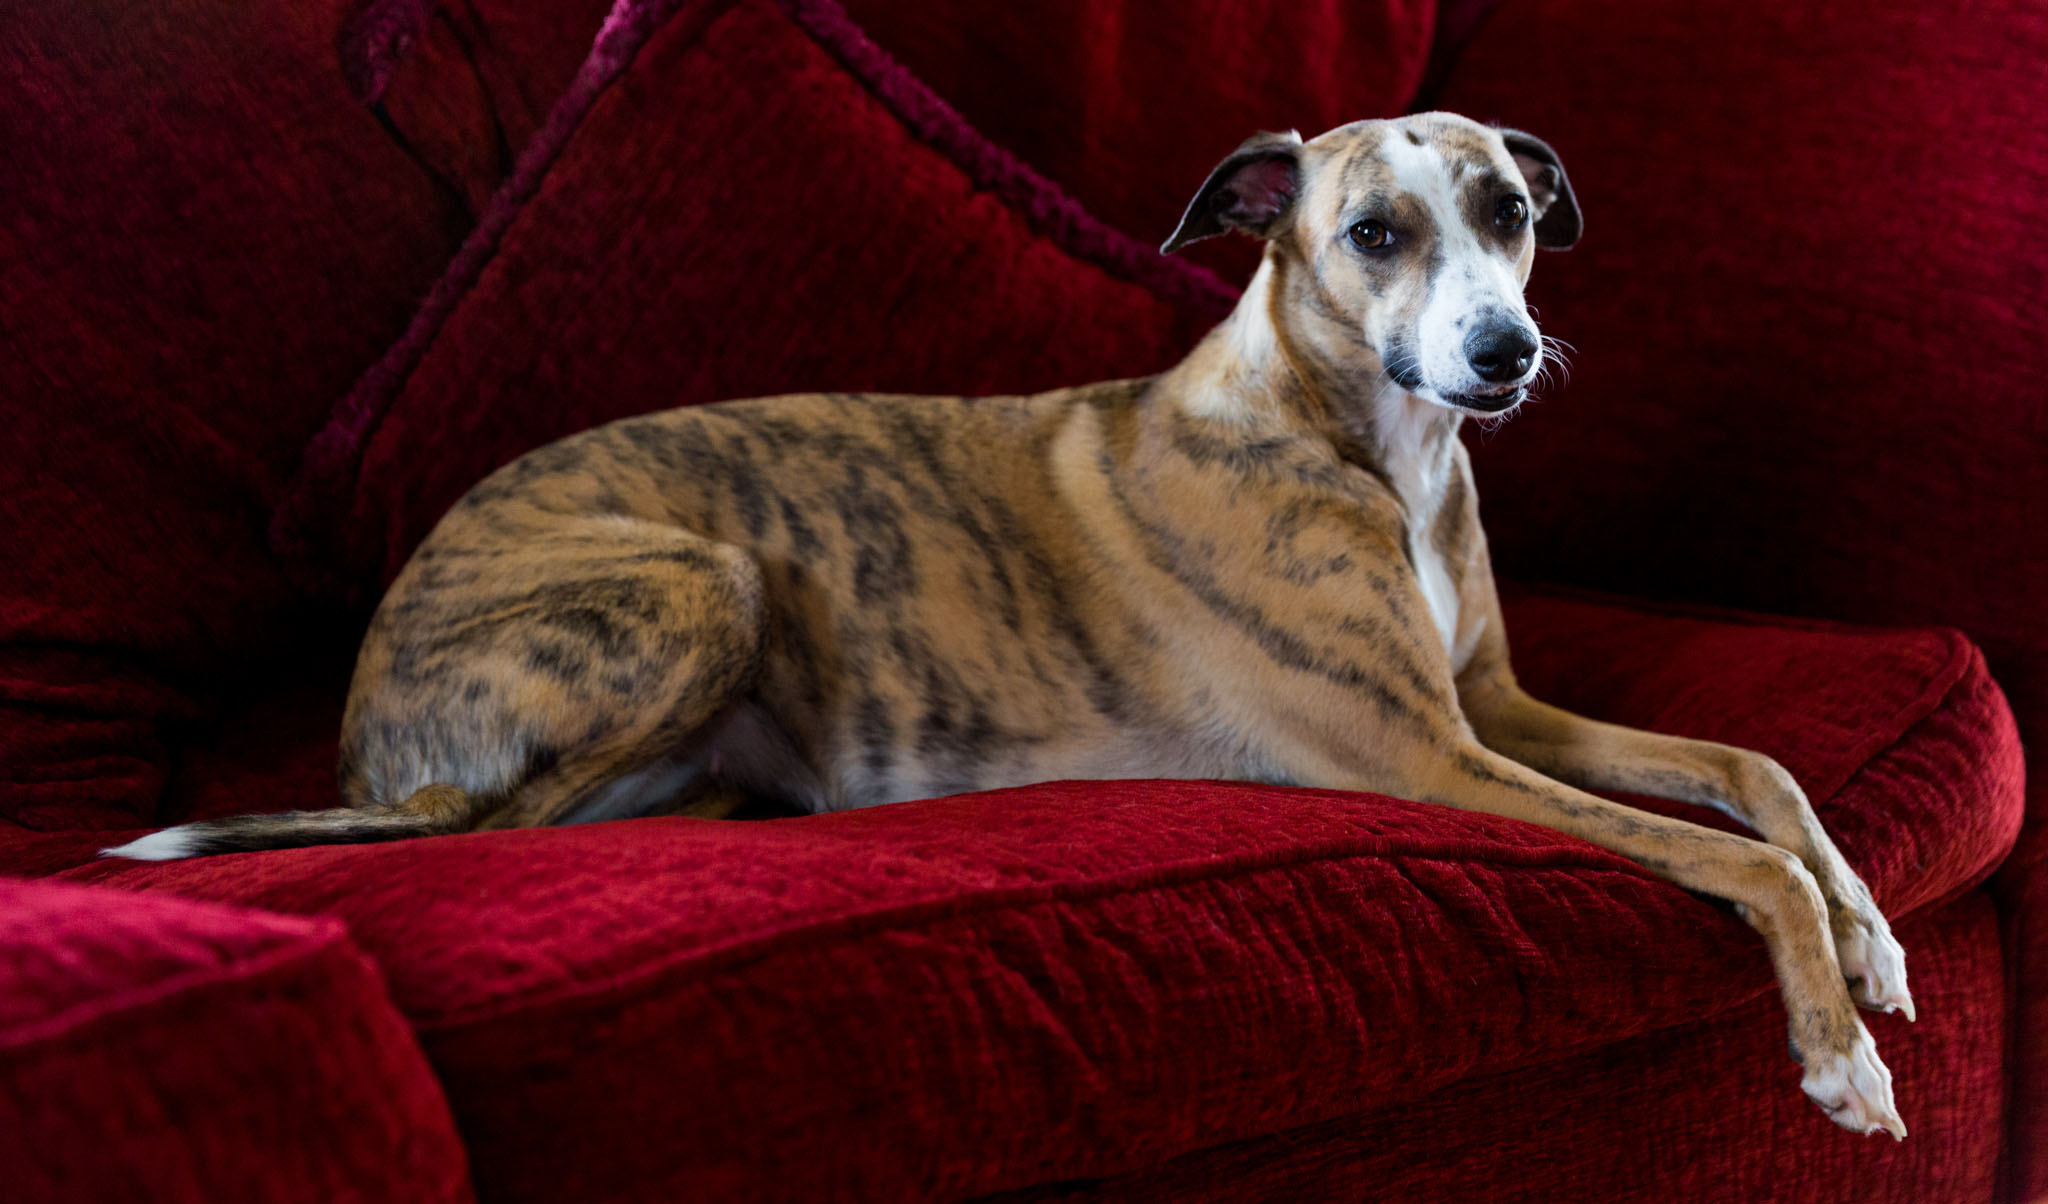 Pet portrait photography of a whippet on a sofa in Warrington, Cheshire